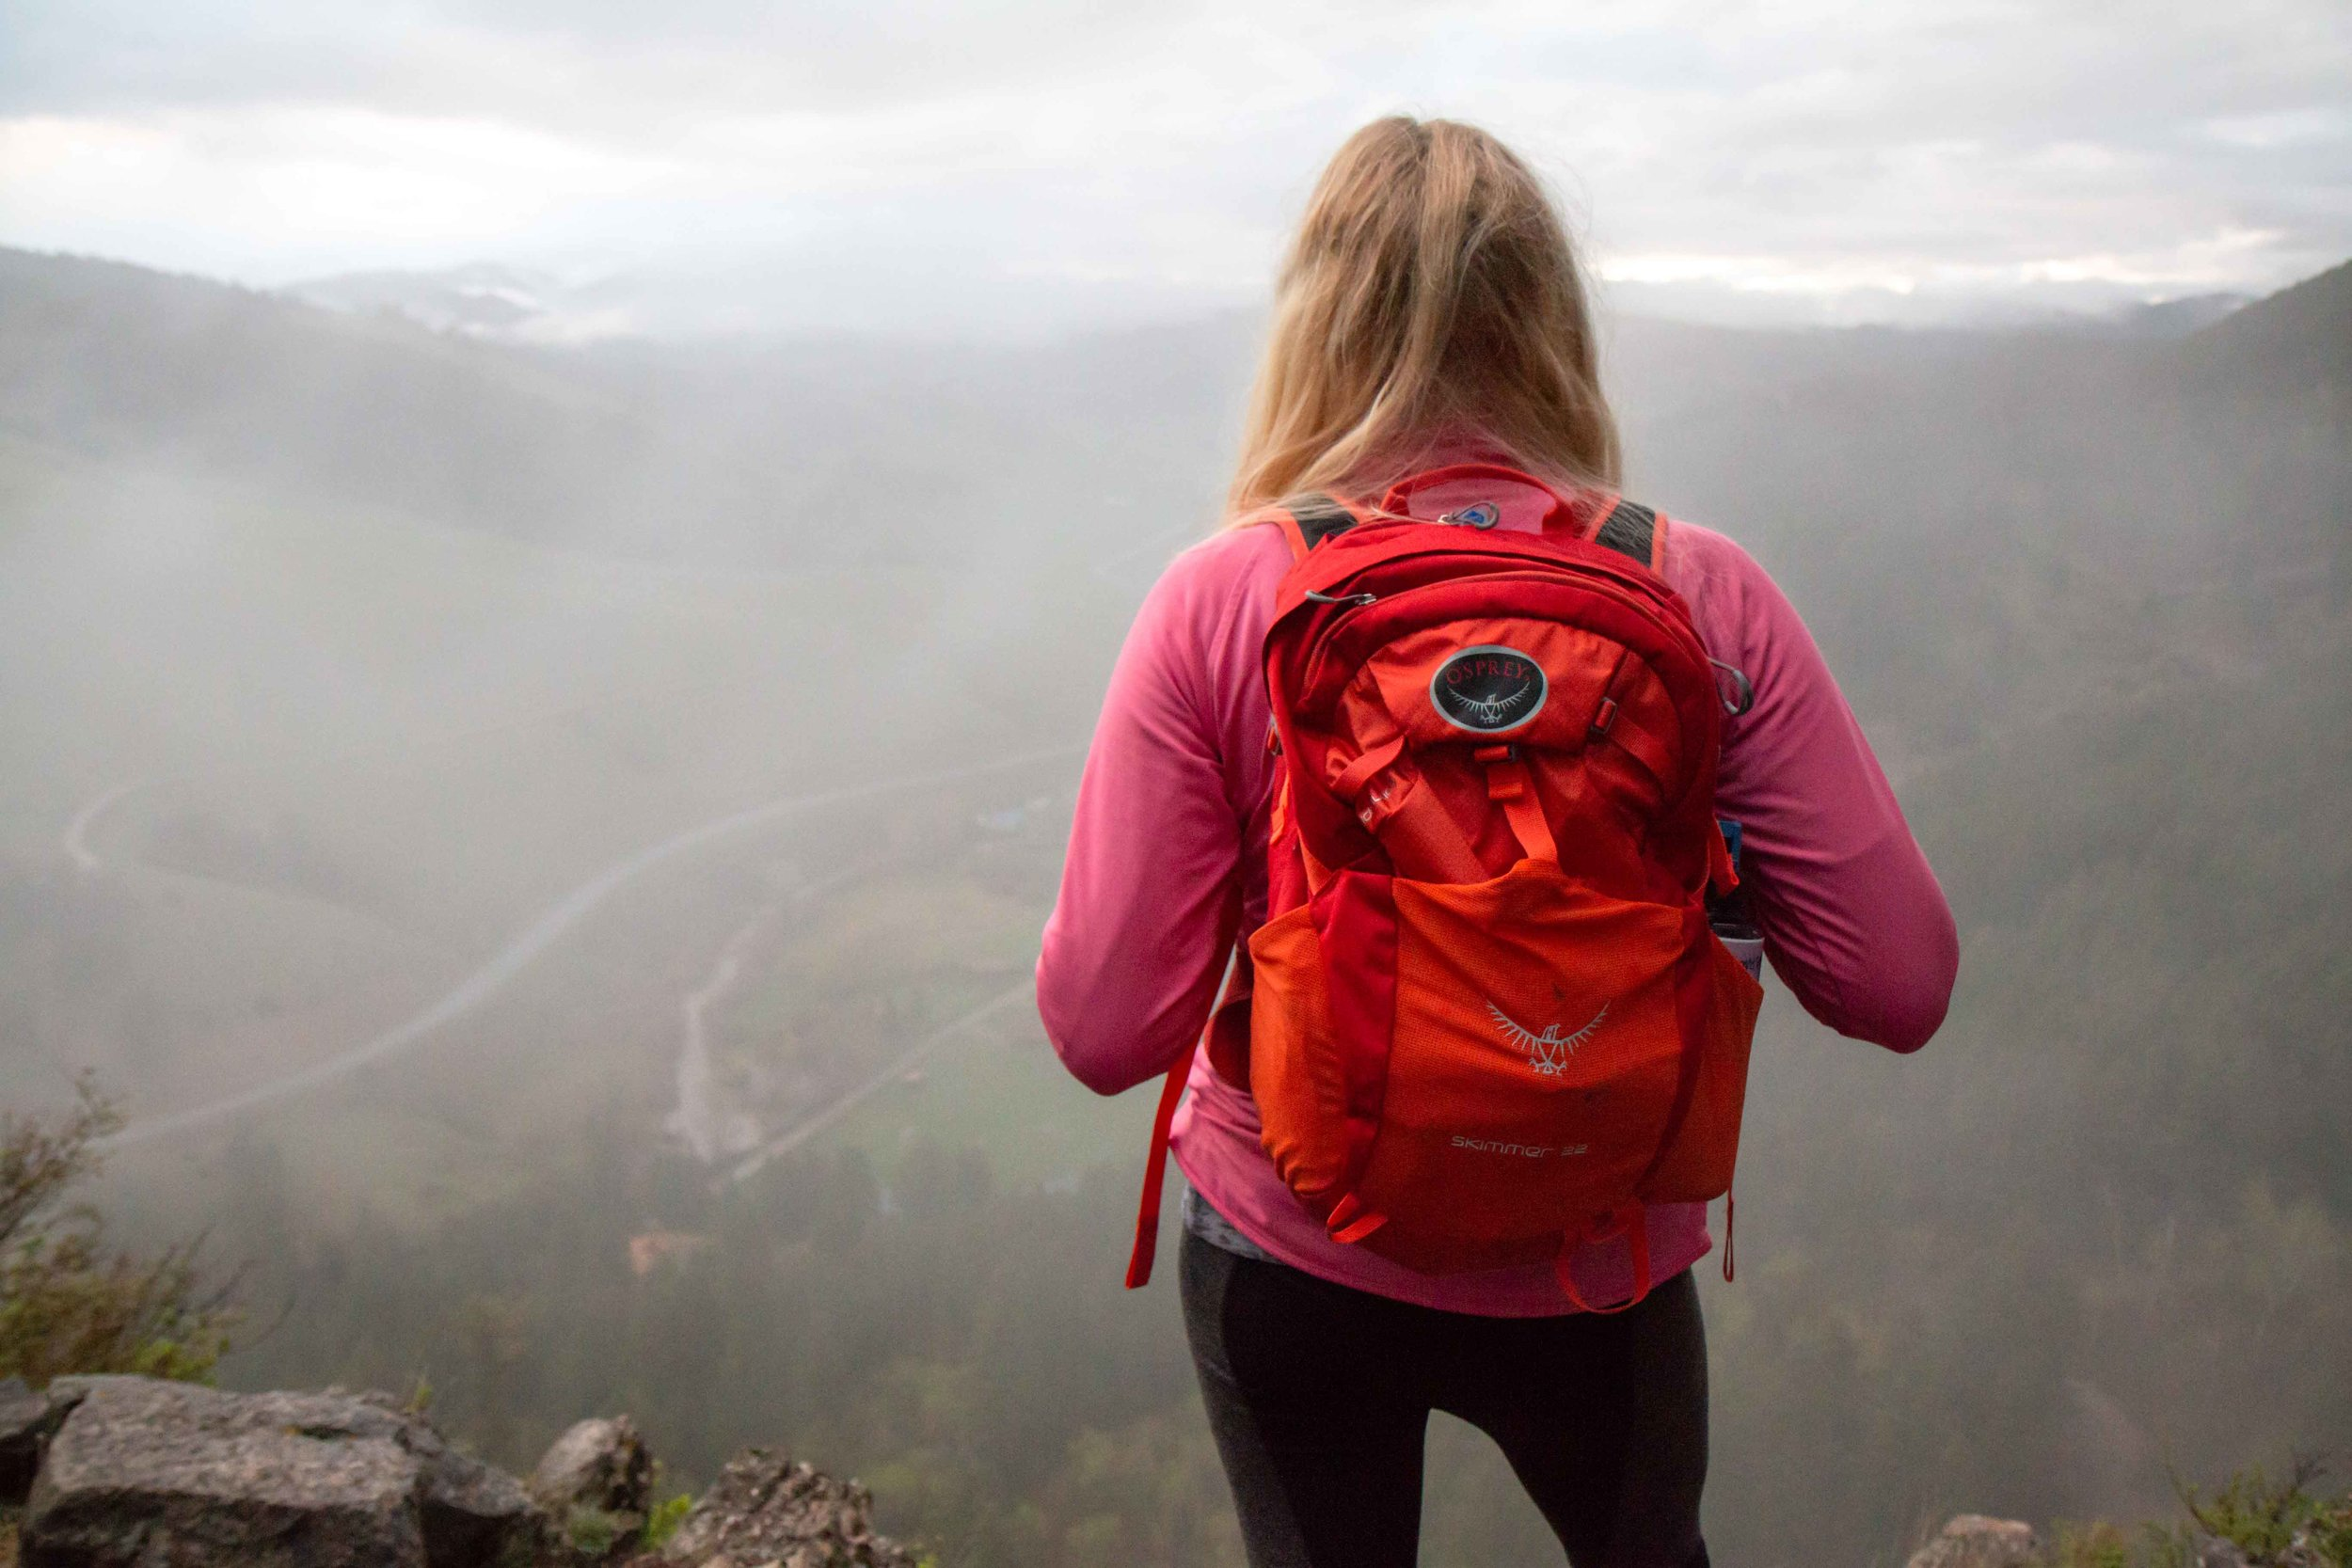 Drinking Horse Mountain Trail near Bozeman, Montana. A beautiful and easy hike that is great for the whole family. Bright and colorful Osprey hiking backpack.